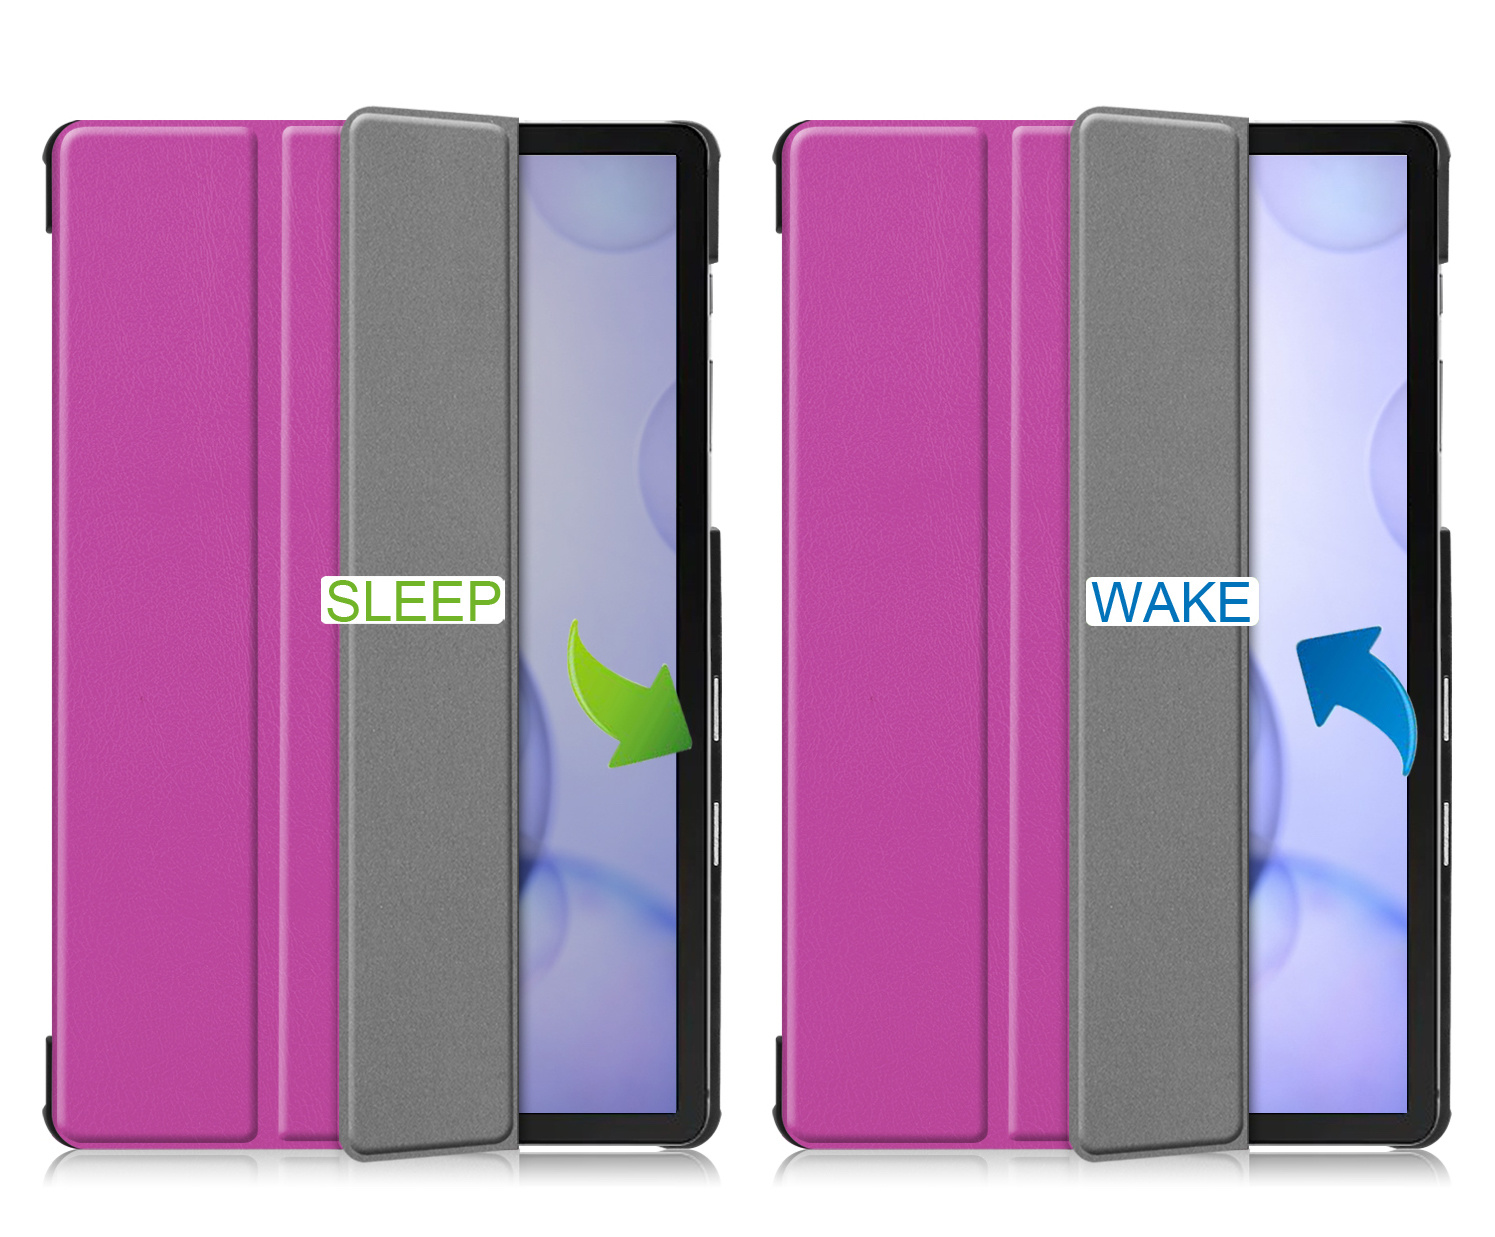 Lunso 3-Vouw sleepcover hoes Paars voor de Samsung Galaxy Tab S6